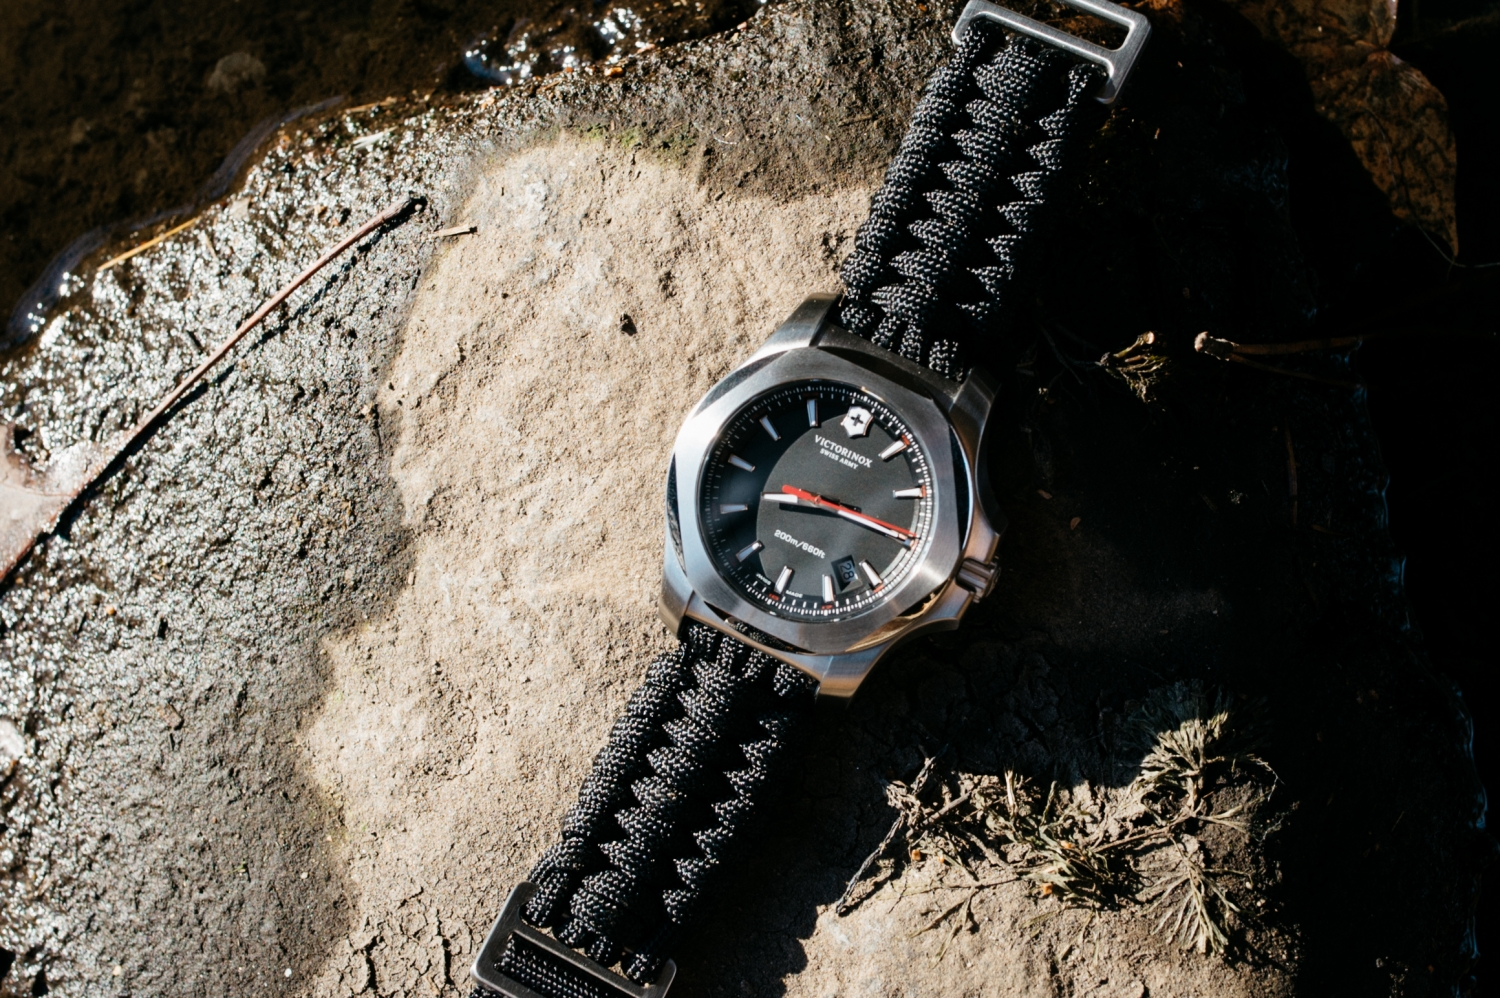 Victorinox Swiss Army I.N.O.X. Paracord Watch Giveaway